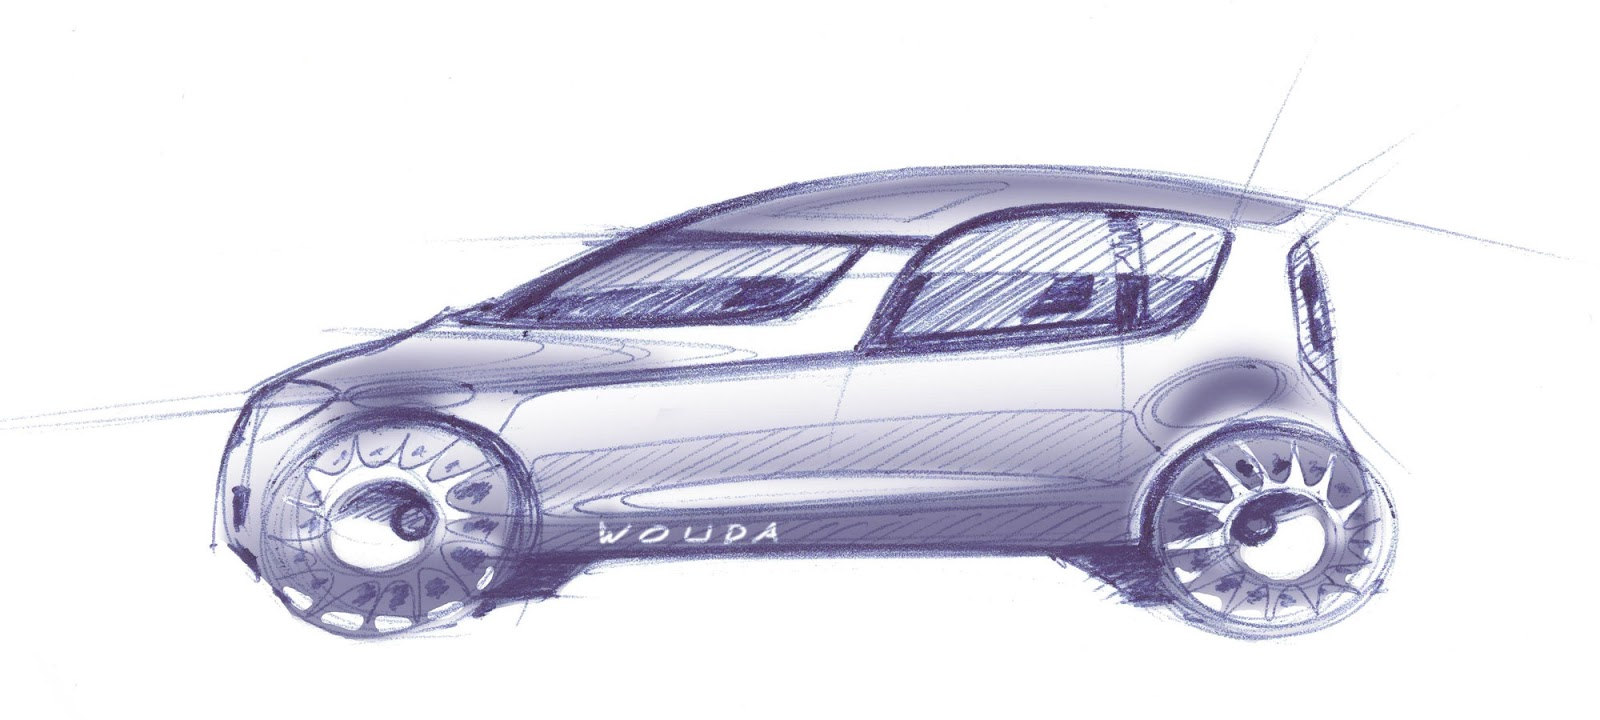 Skoda Roomster sketch by Peter Wouda - final theme, rough side view